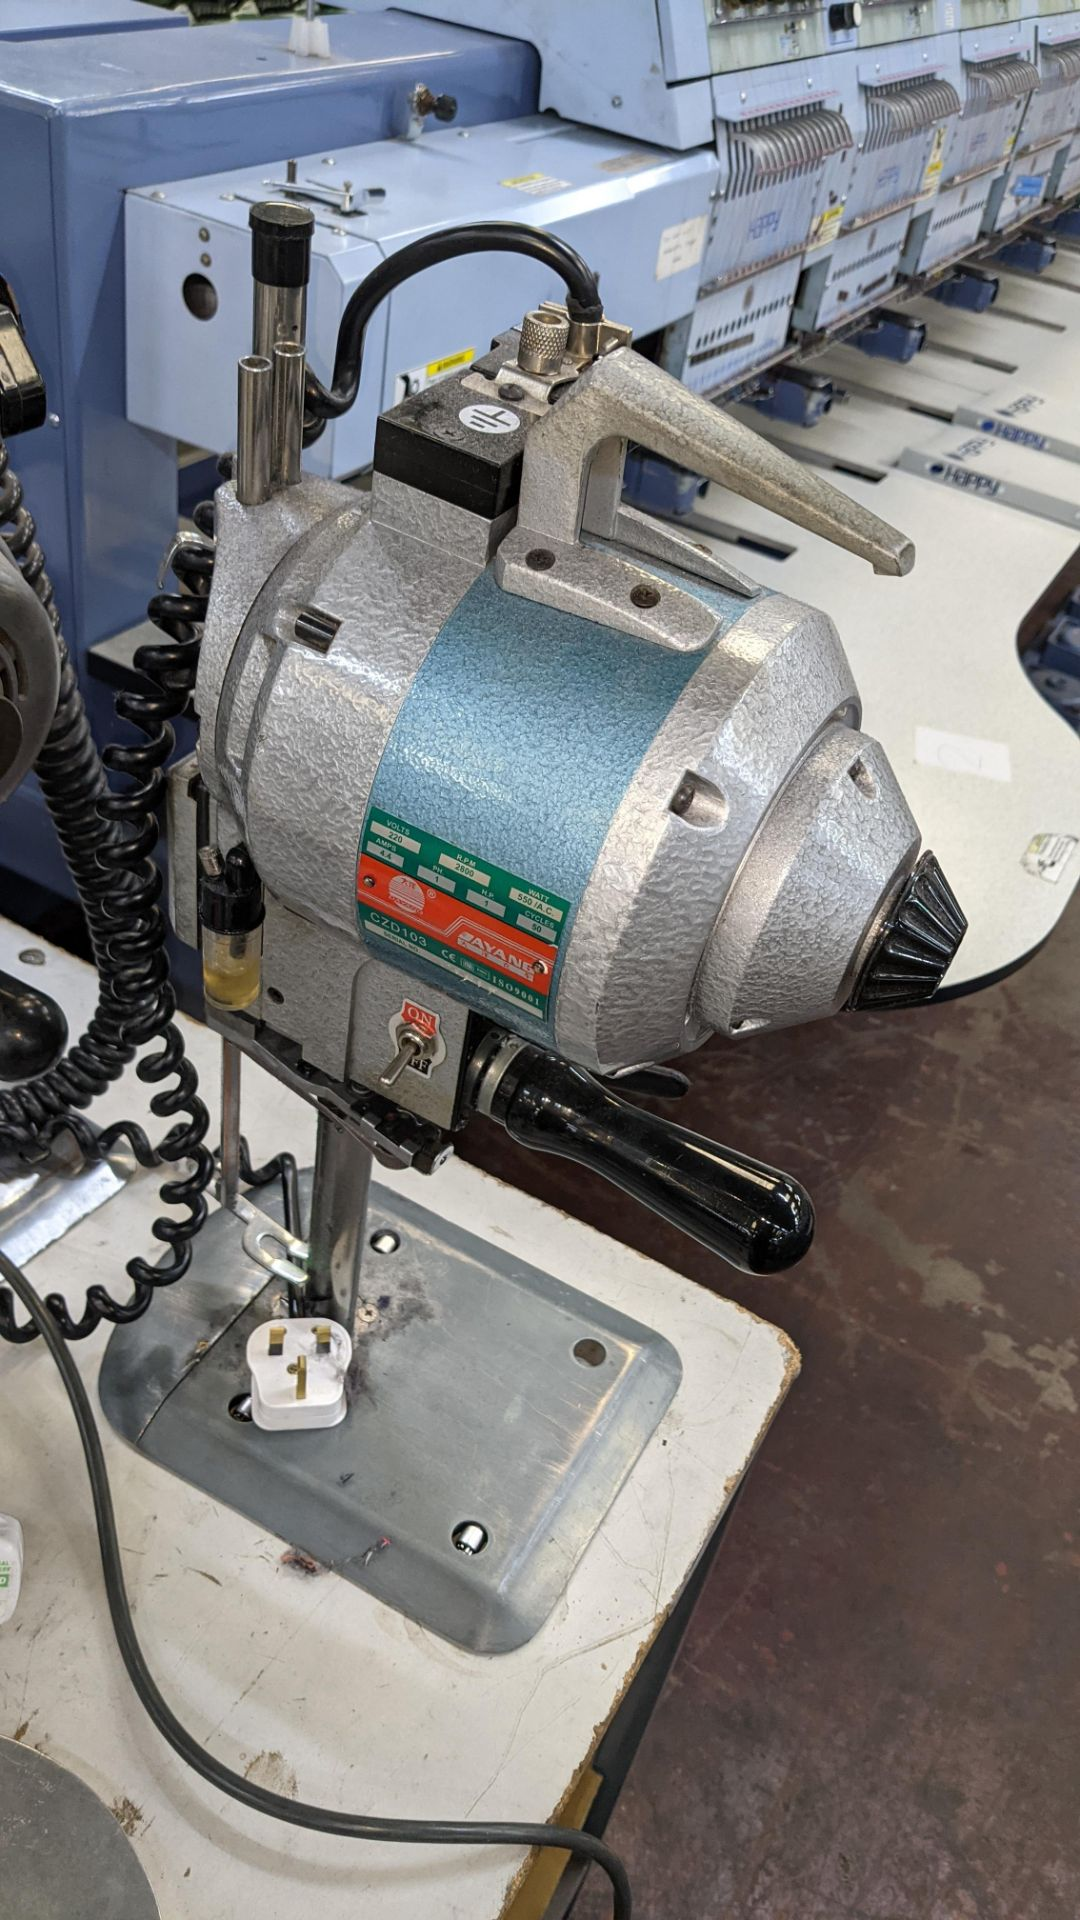 Ayang model CZD103 electric cutter - Image 6 of 6